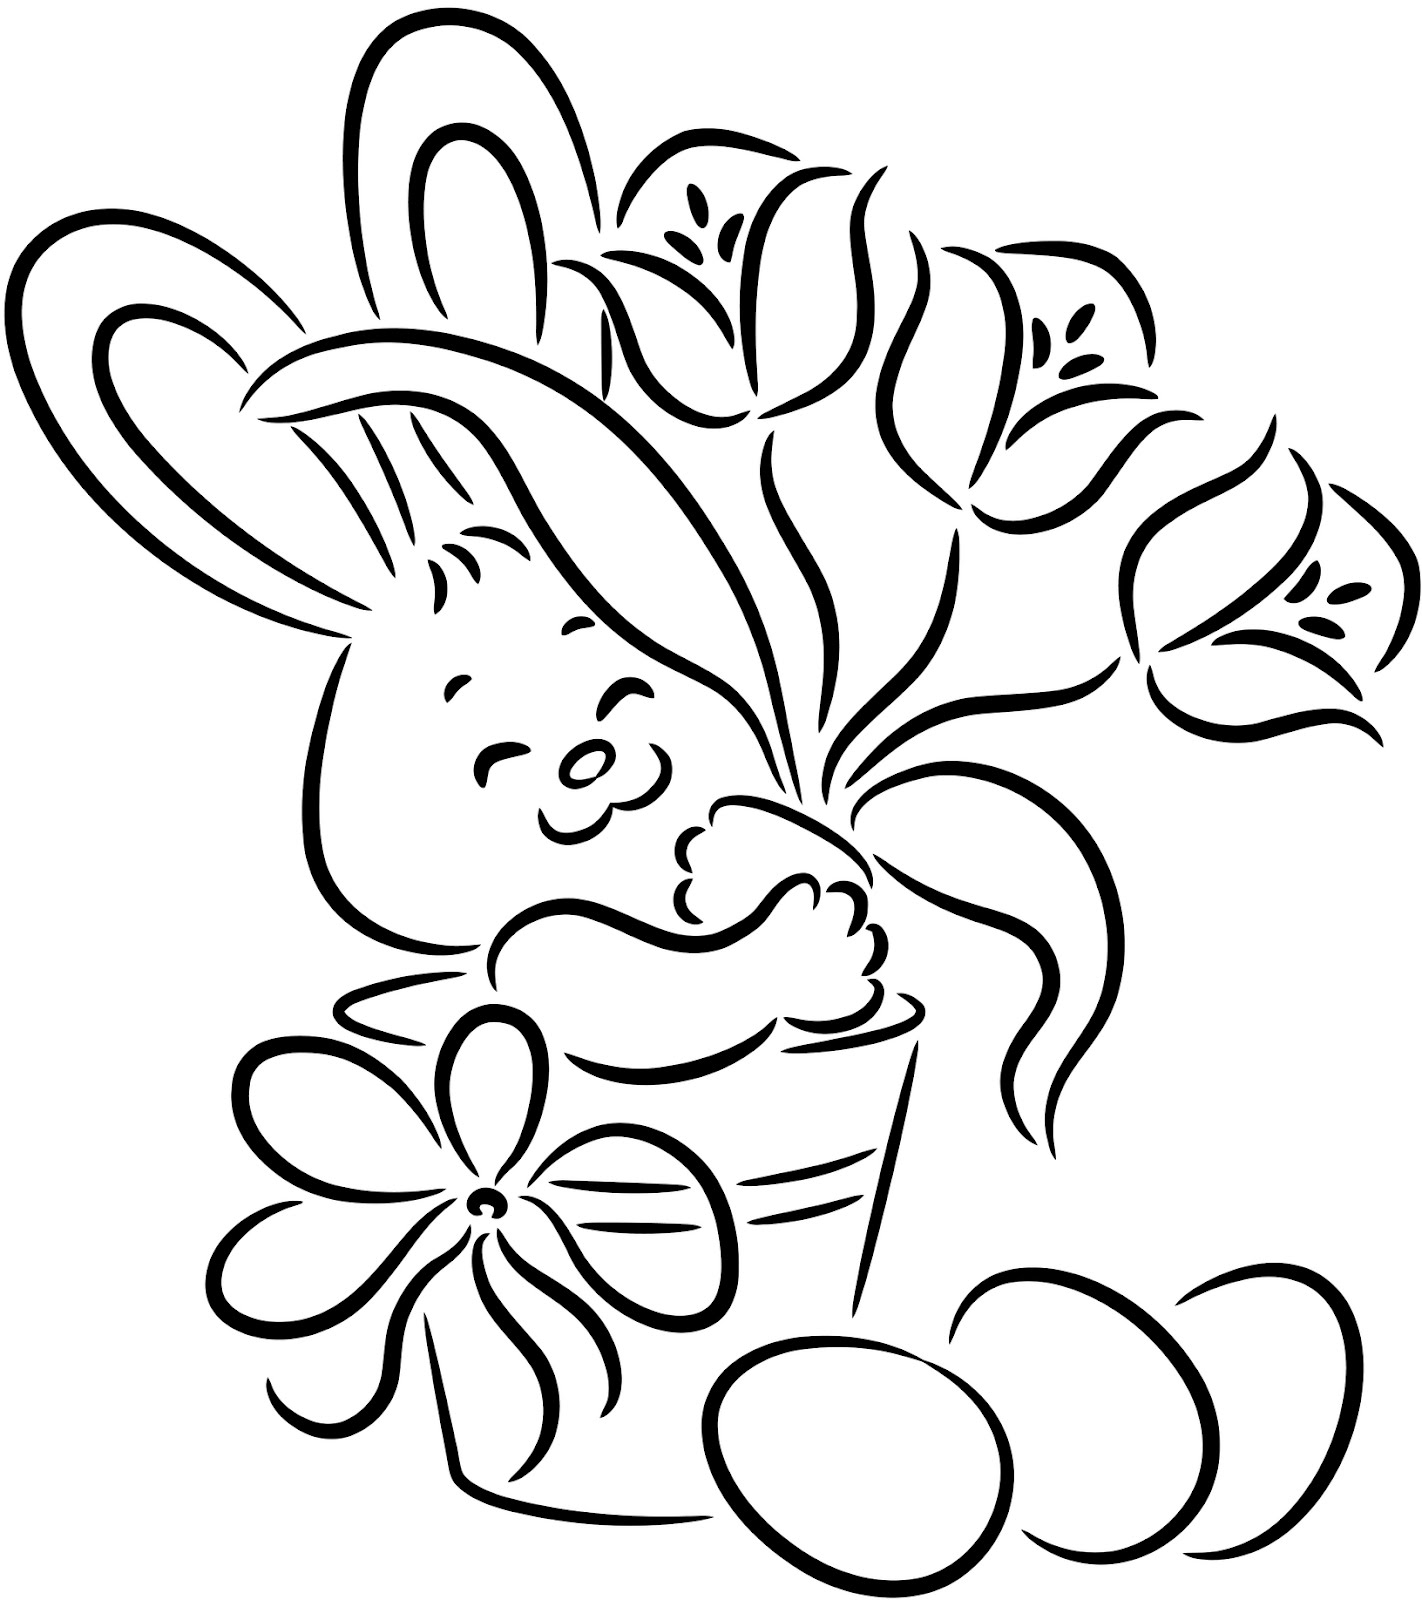 easter coloring pages easter bunny - photo#8